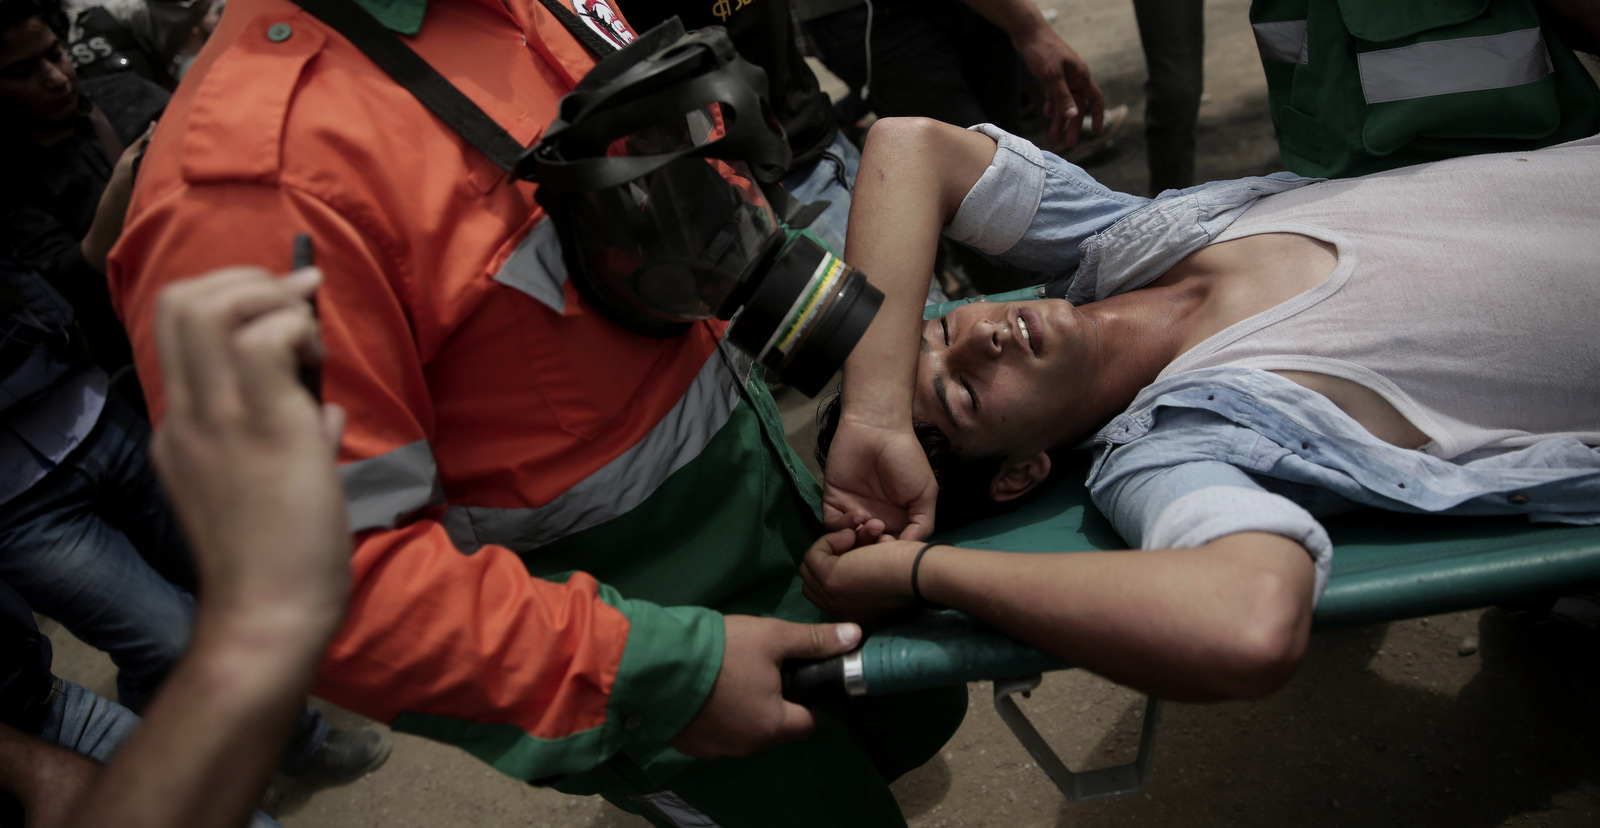 """As IDF Uses Gaza Protesters for Shoot-to-Maim Target Practice, Israel Argues Human Rights Don't Apply to this """"War"""""""